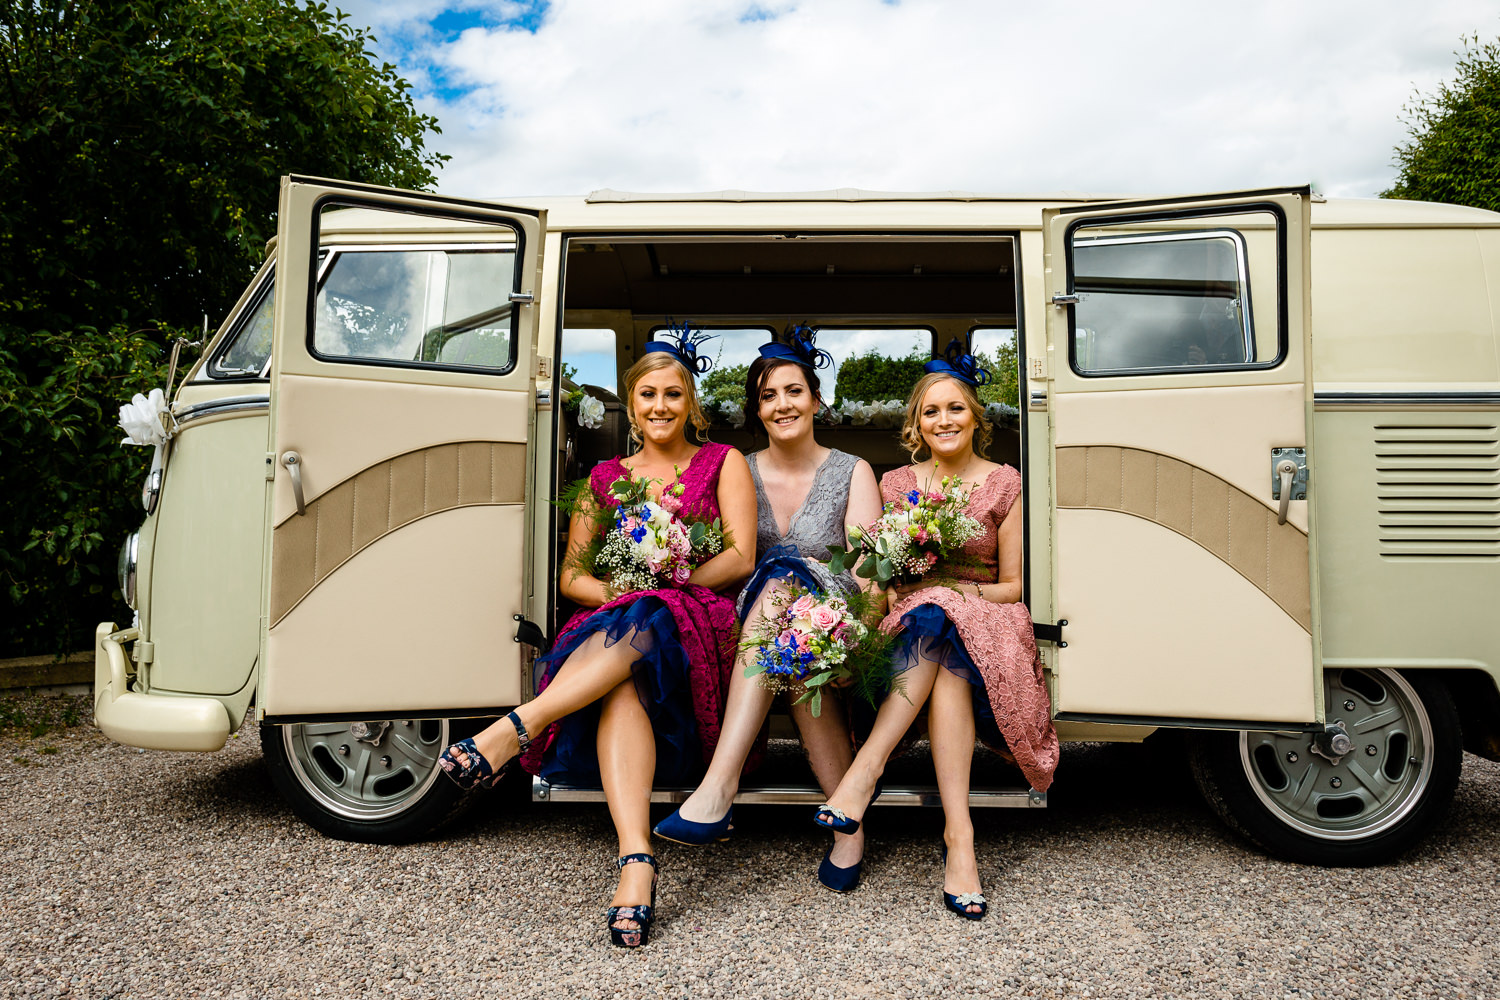 Colourful and retro bridesmaids in a vintage wedding VW campervan